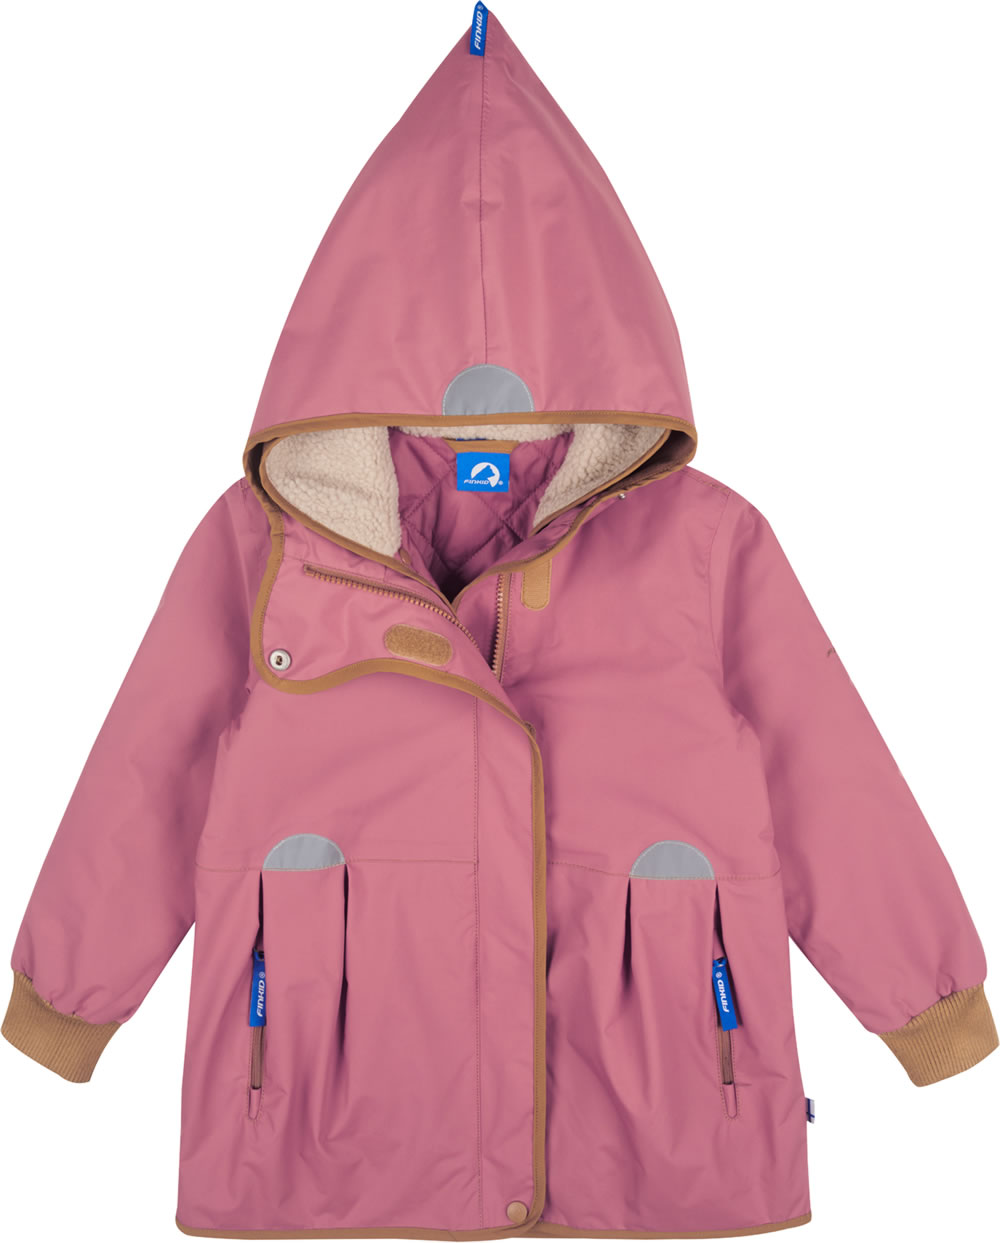 uk availability d3bdf dcc07 Finkid Mädchen Outdoorjacke 2 in 1 AINA rose/cinnamon 1132002-206416